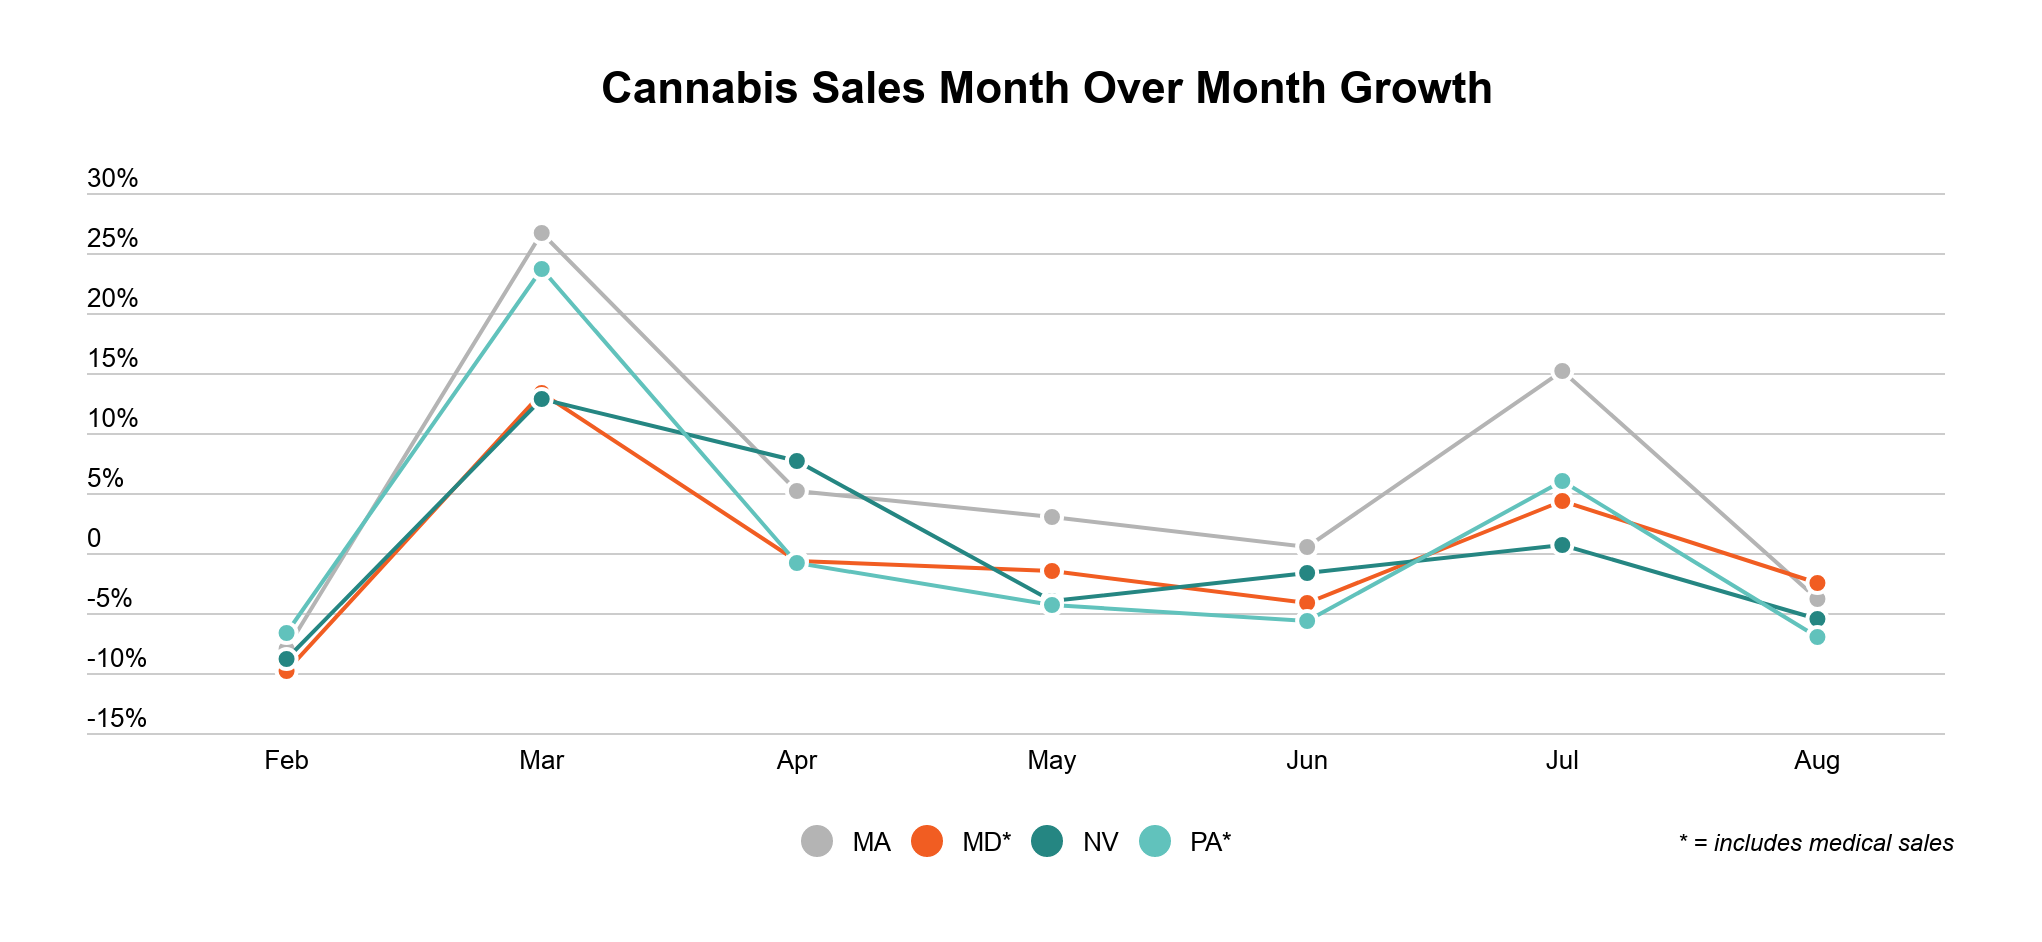 Maryland cannabis market report graph 3: Month over month growth